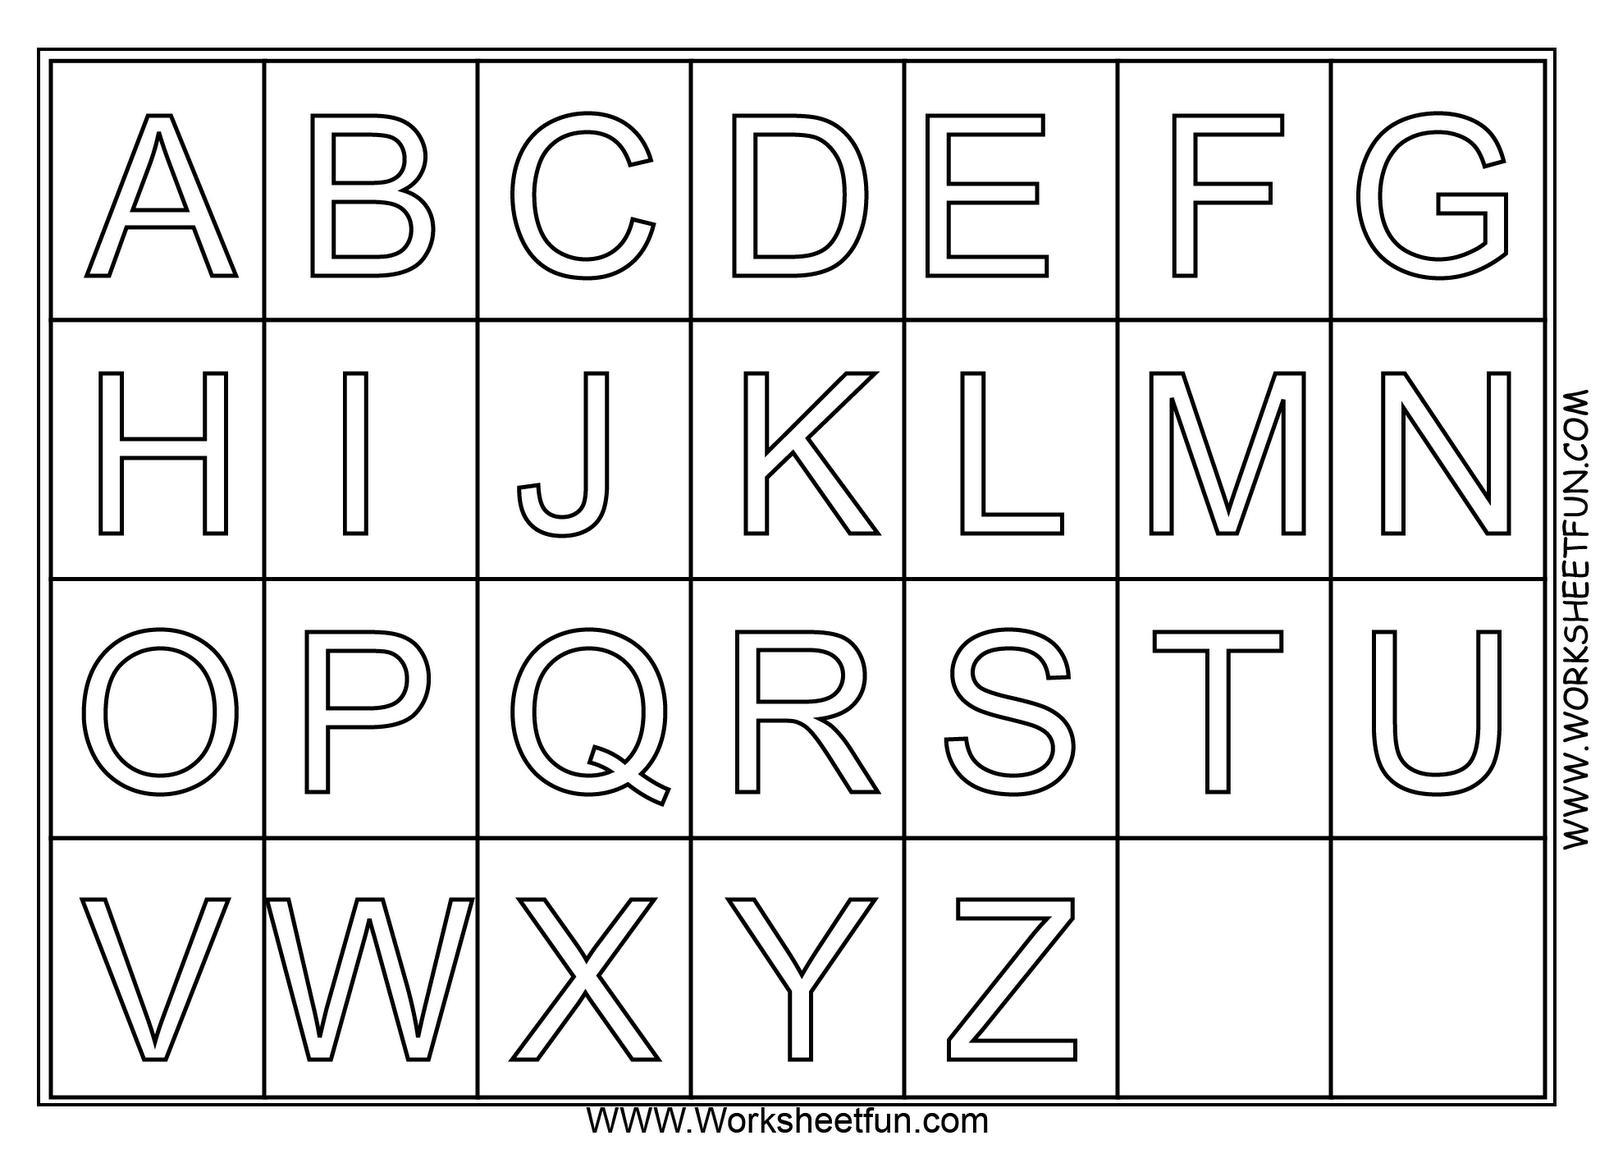 Preschool Alphabet Worksheets A-z 7